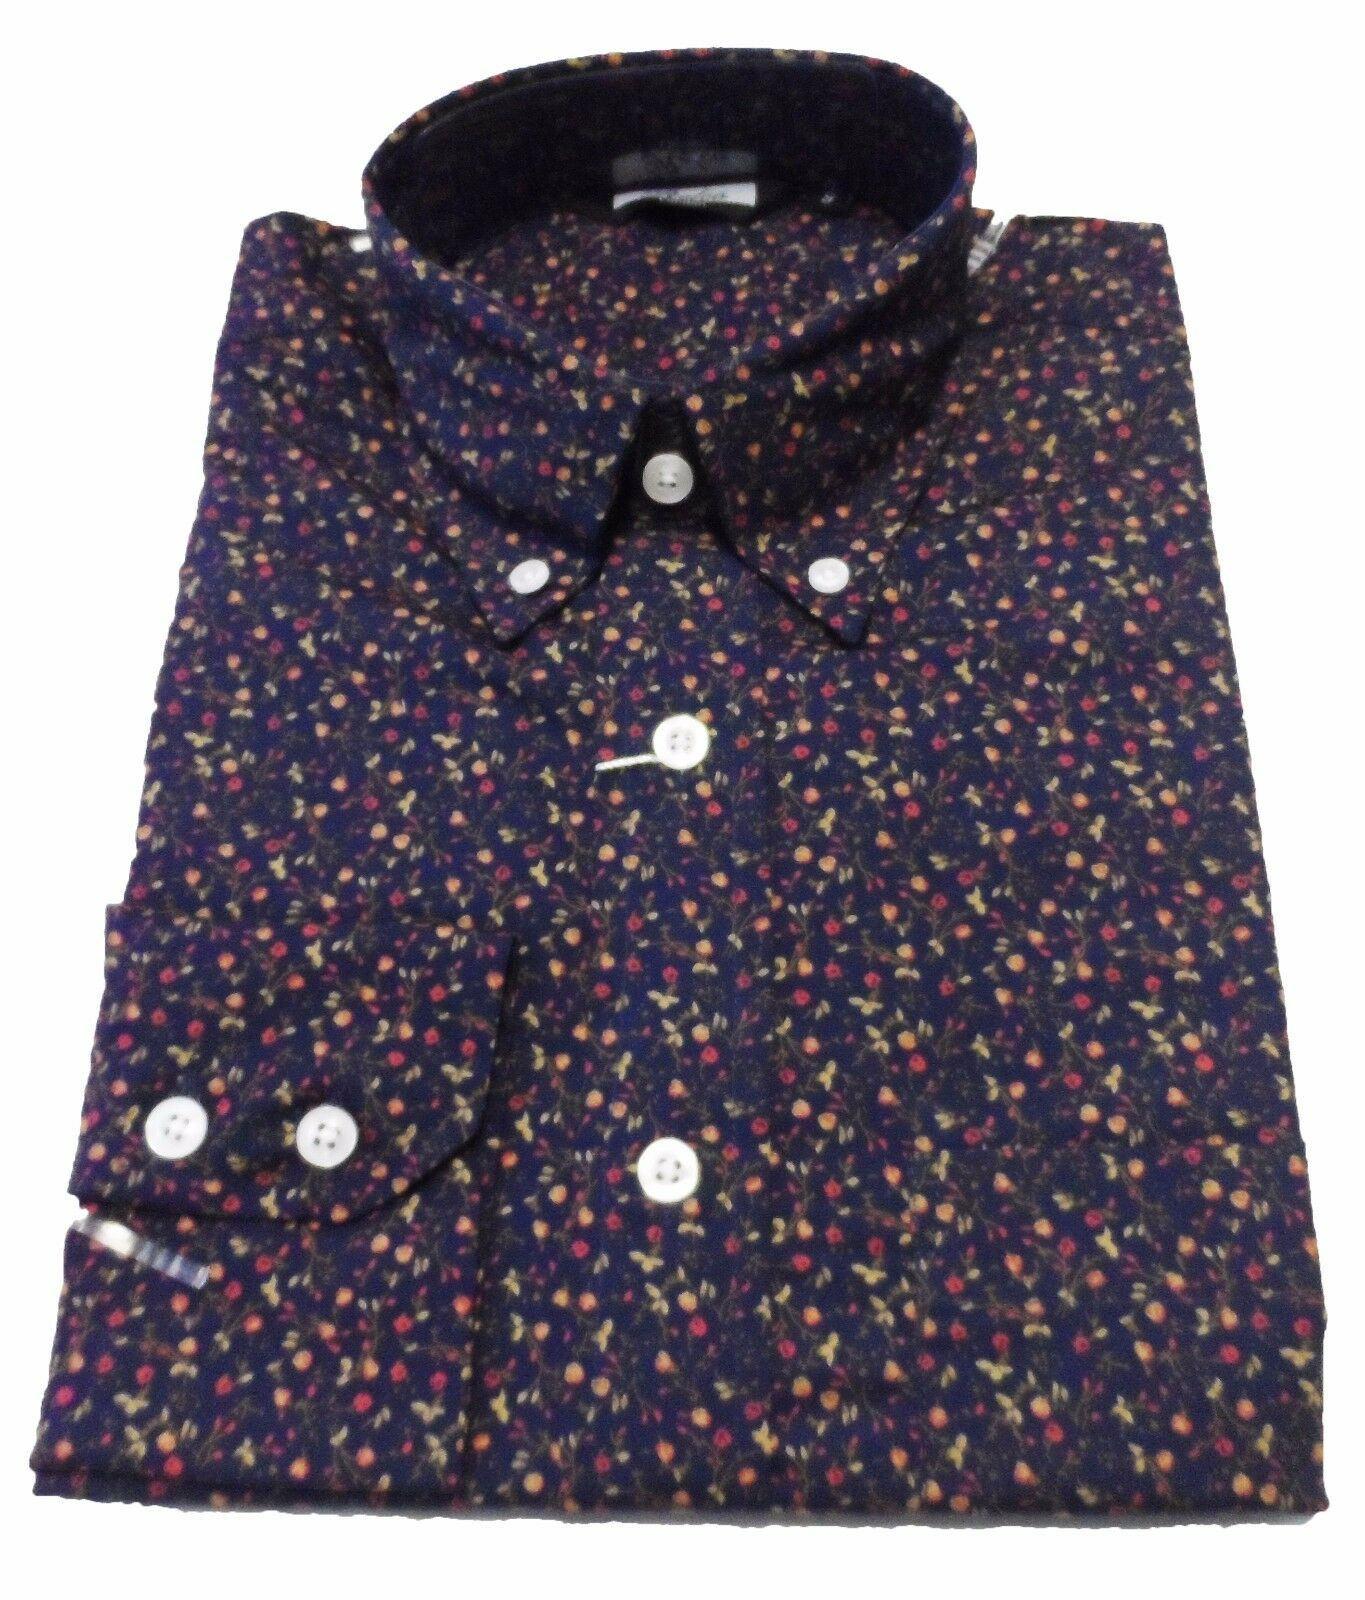 9163ae873b49 Relco Navy Floral Multi Cotton Long Sleeved Retro Mod Button Down Shirts